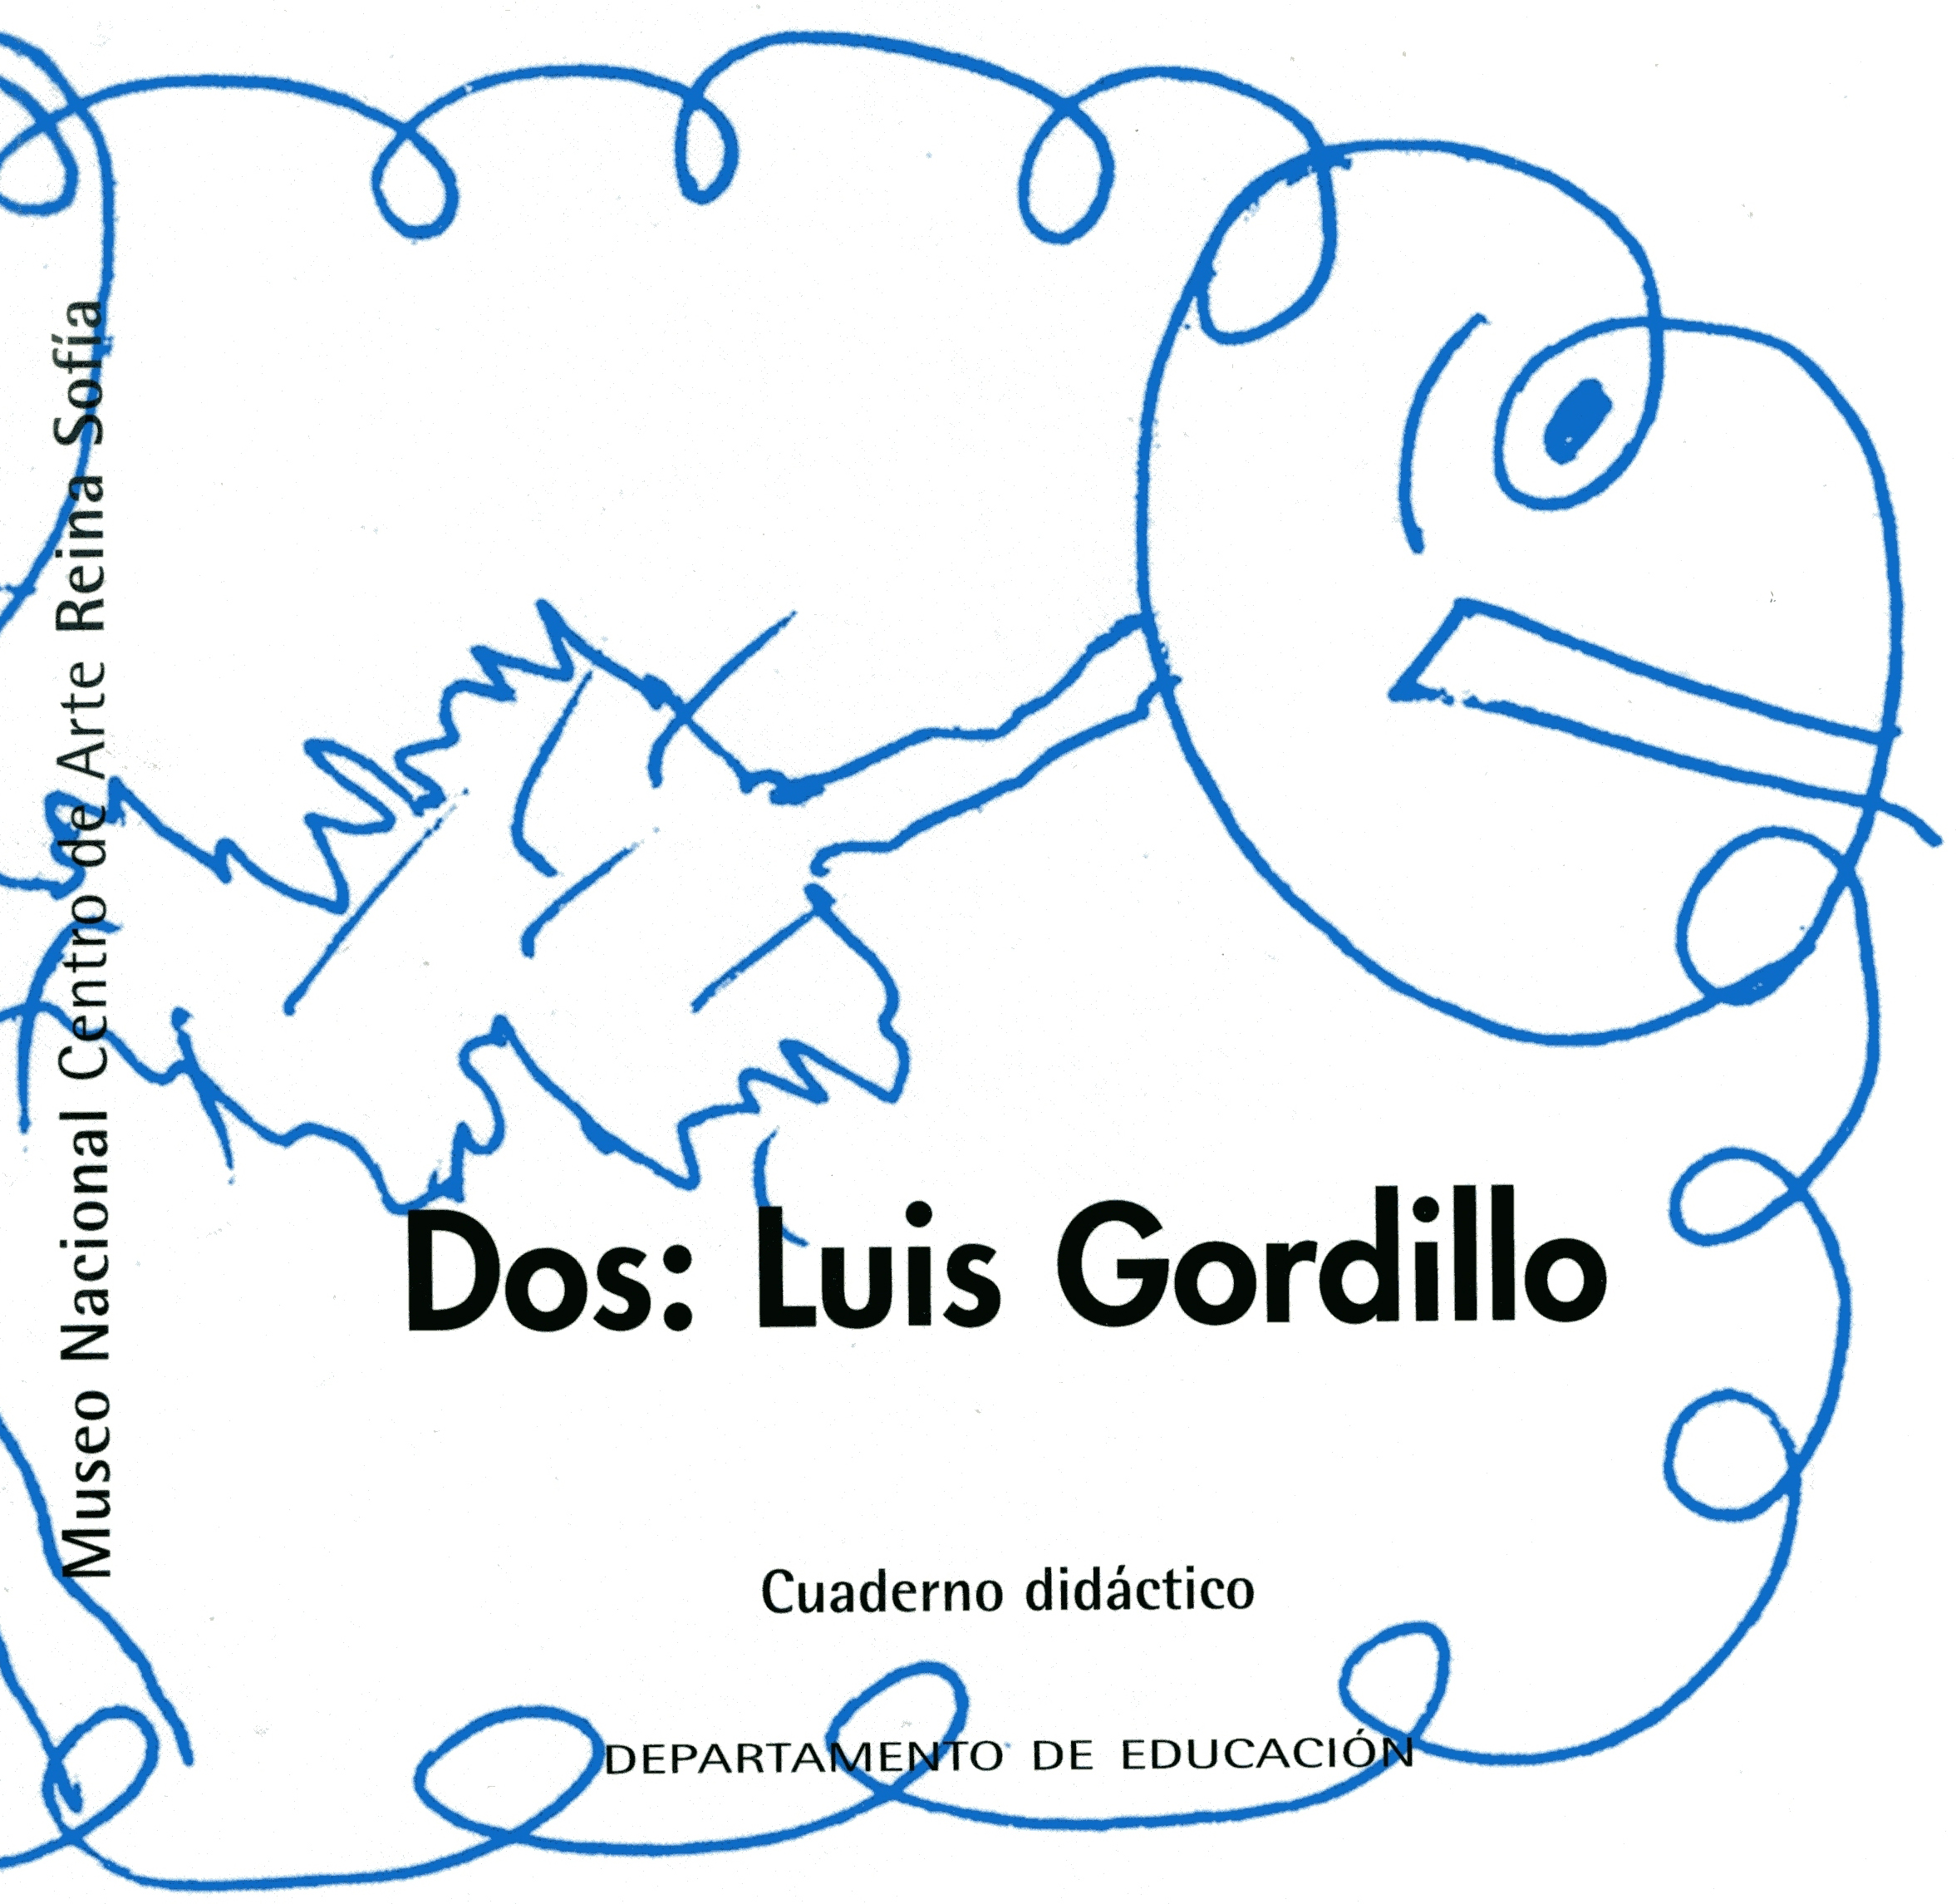 Dos: Luis Gordillo, 2007